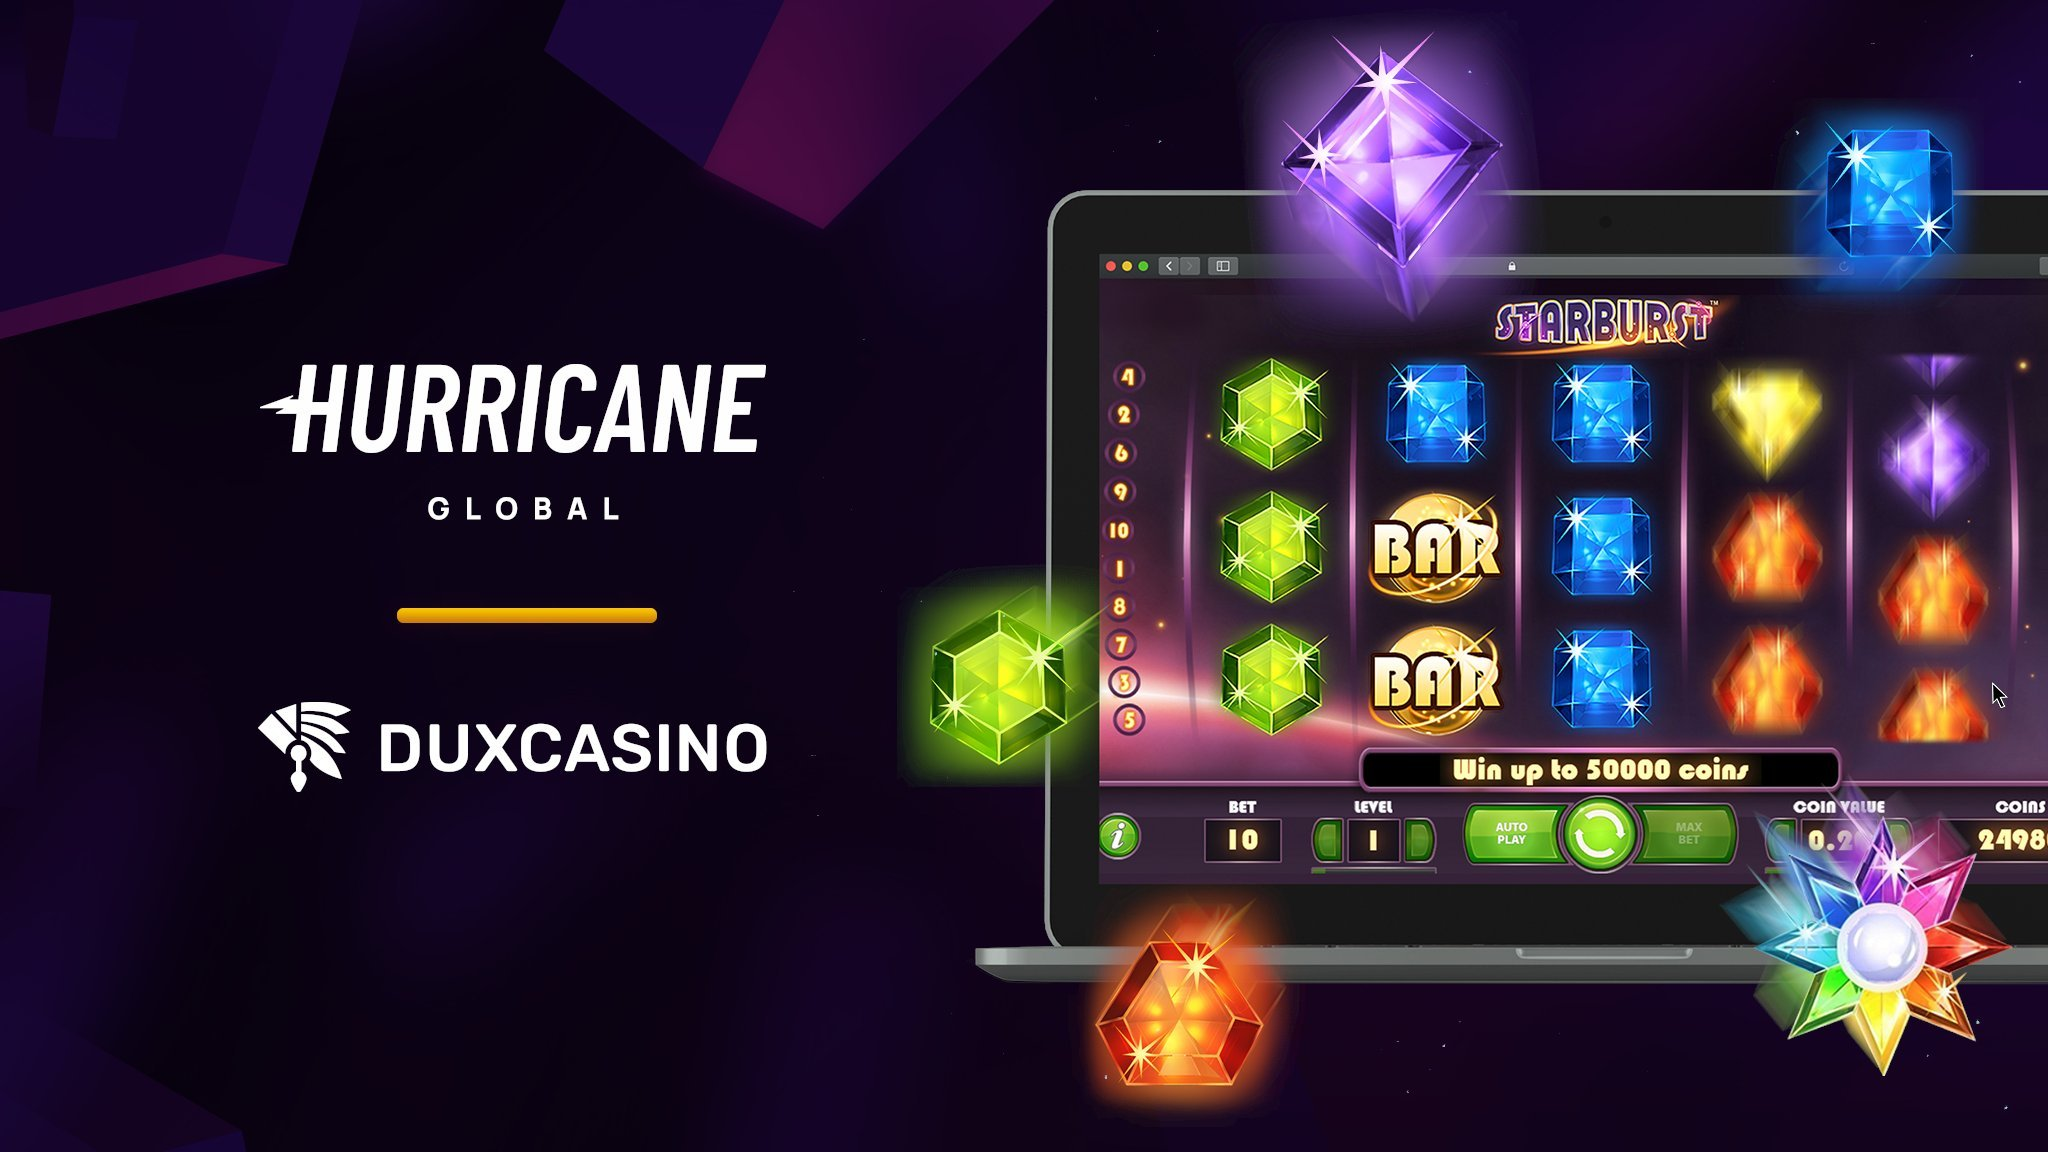 Hurricane Global Acquires DuxCasino For Unique Gaming Experience